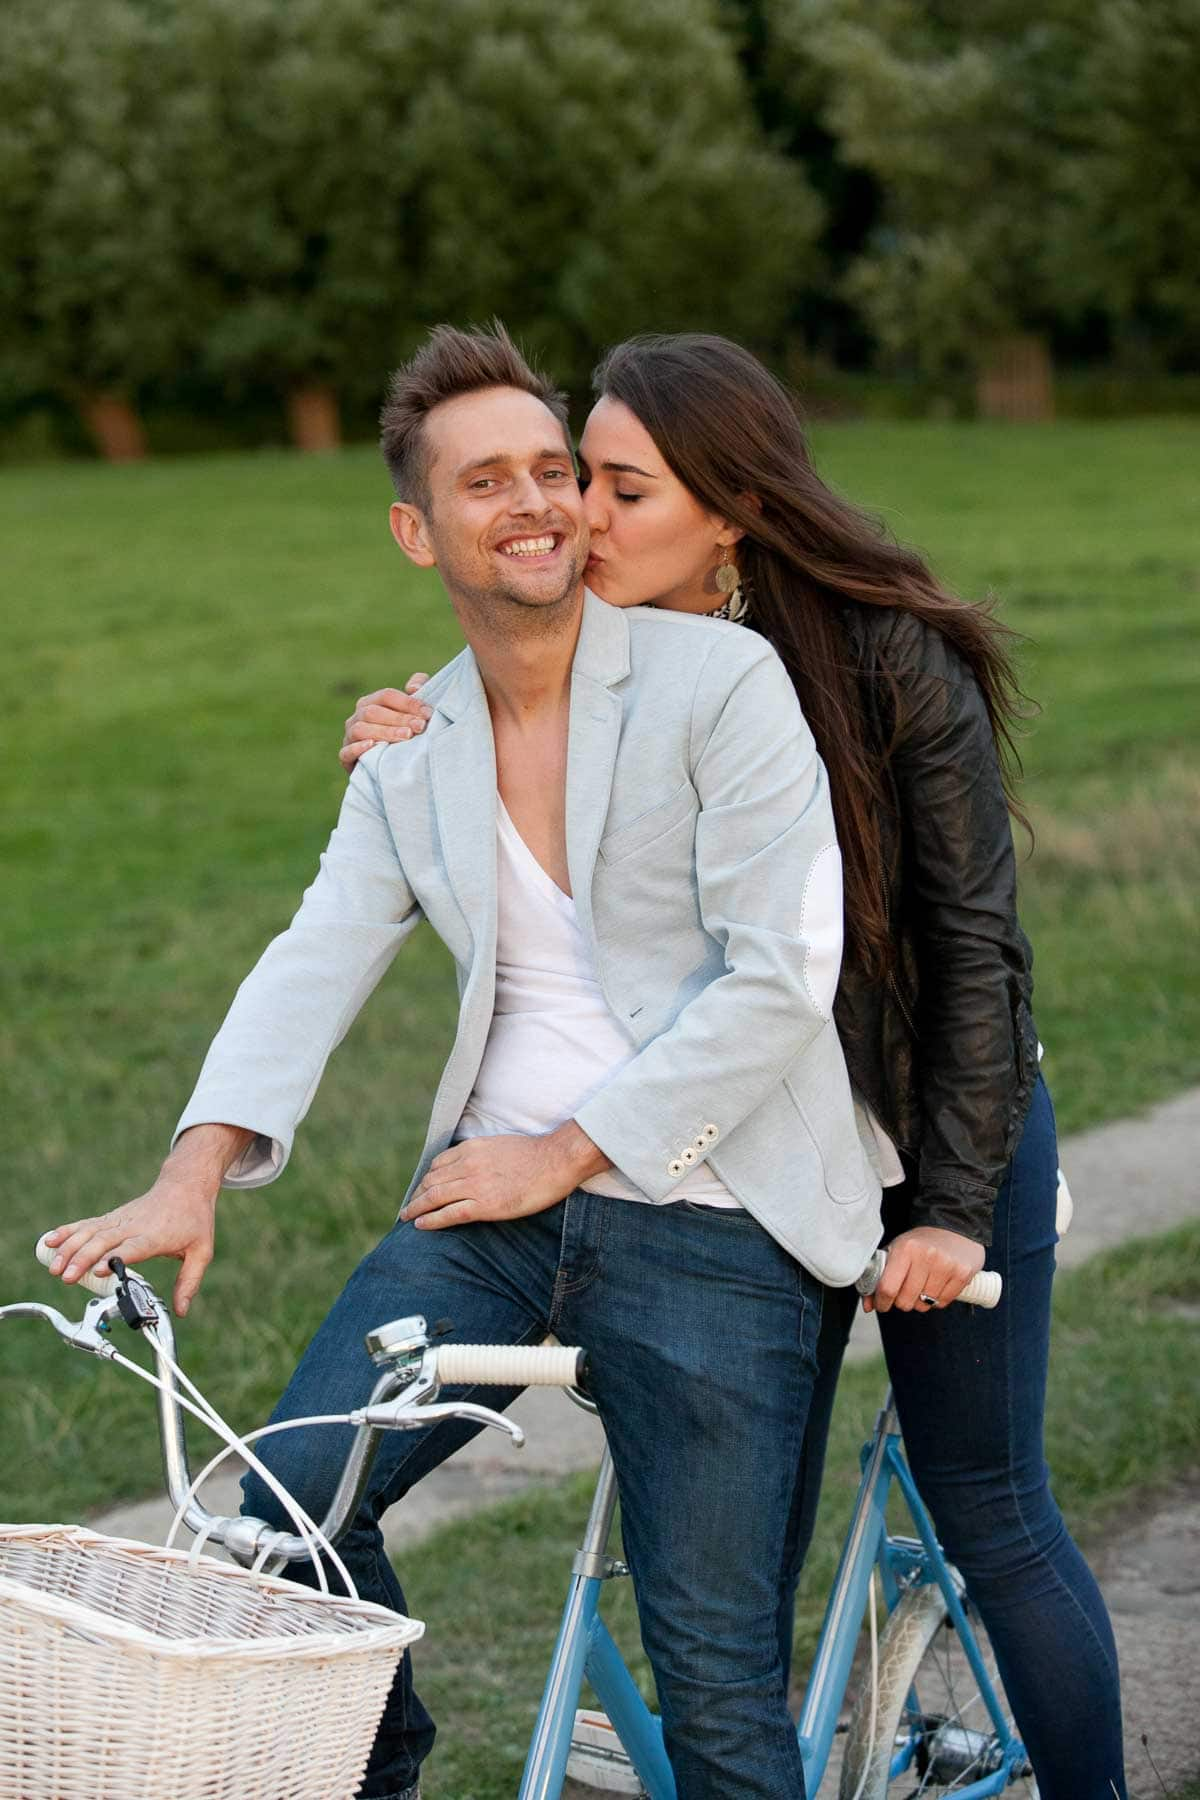 Woman kisses man's cheek while posing on a tandem